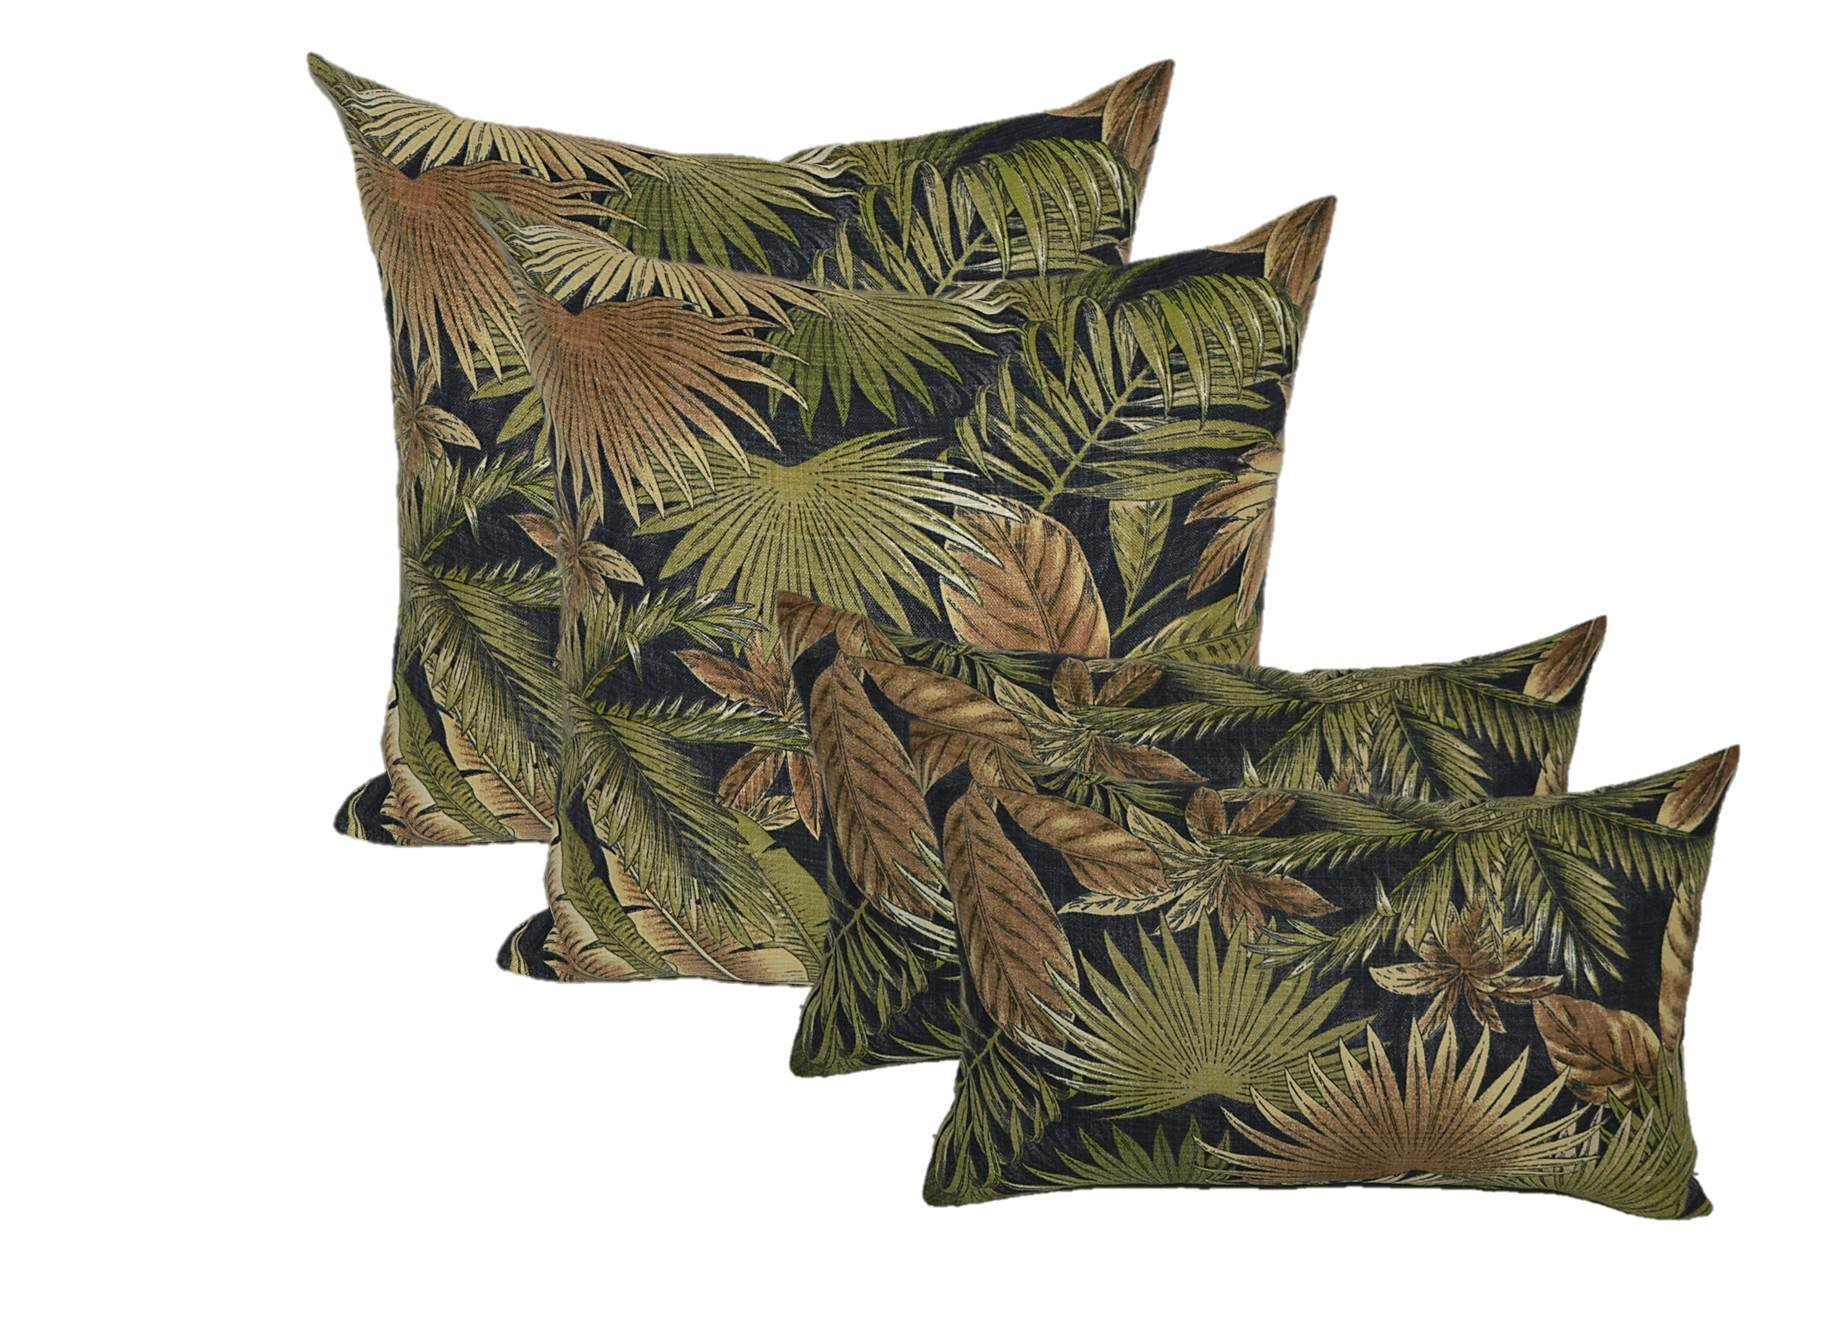 "Set of 4 Indoor / Outdoor Pillow Covers - 2 Square & 2 Rectangle / Lumbar - Tommy Bahama Black, Green, Tan Bahamian Breeze Tropical Palm Leaf - Choose Size (20"" x 20"" square & 11"" x 19"" lumbar)"